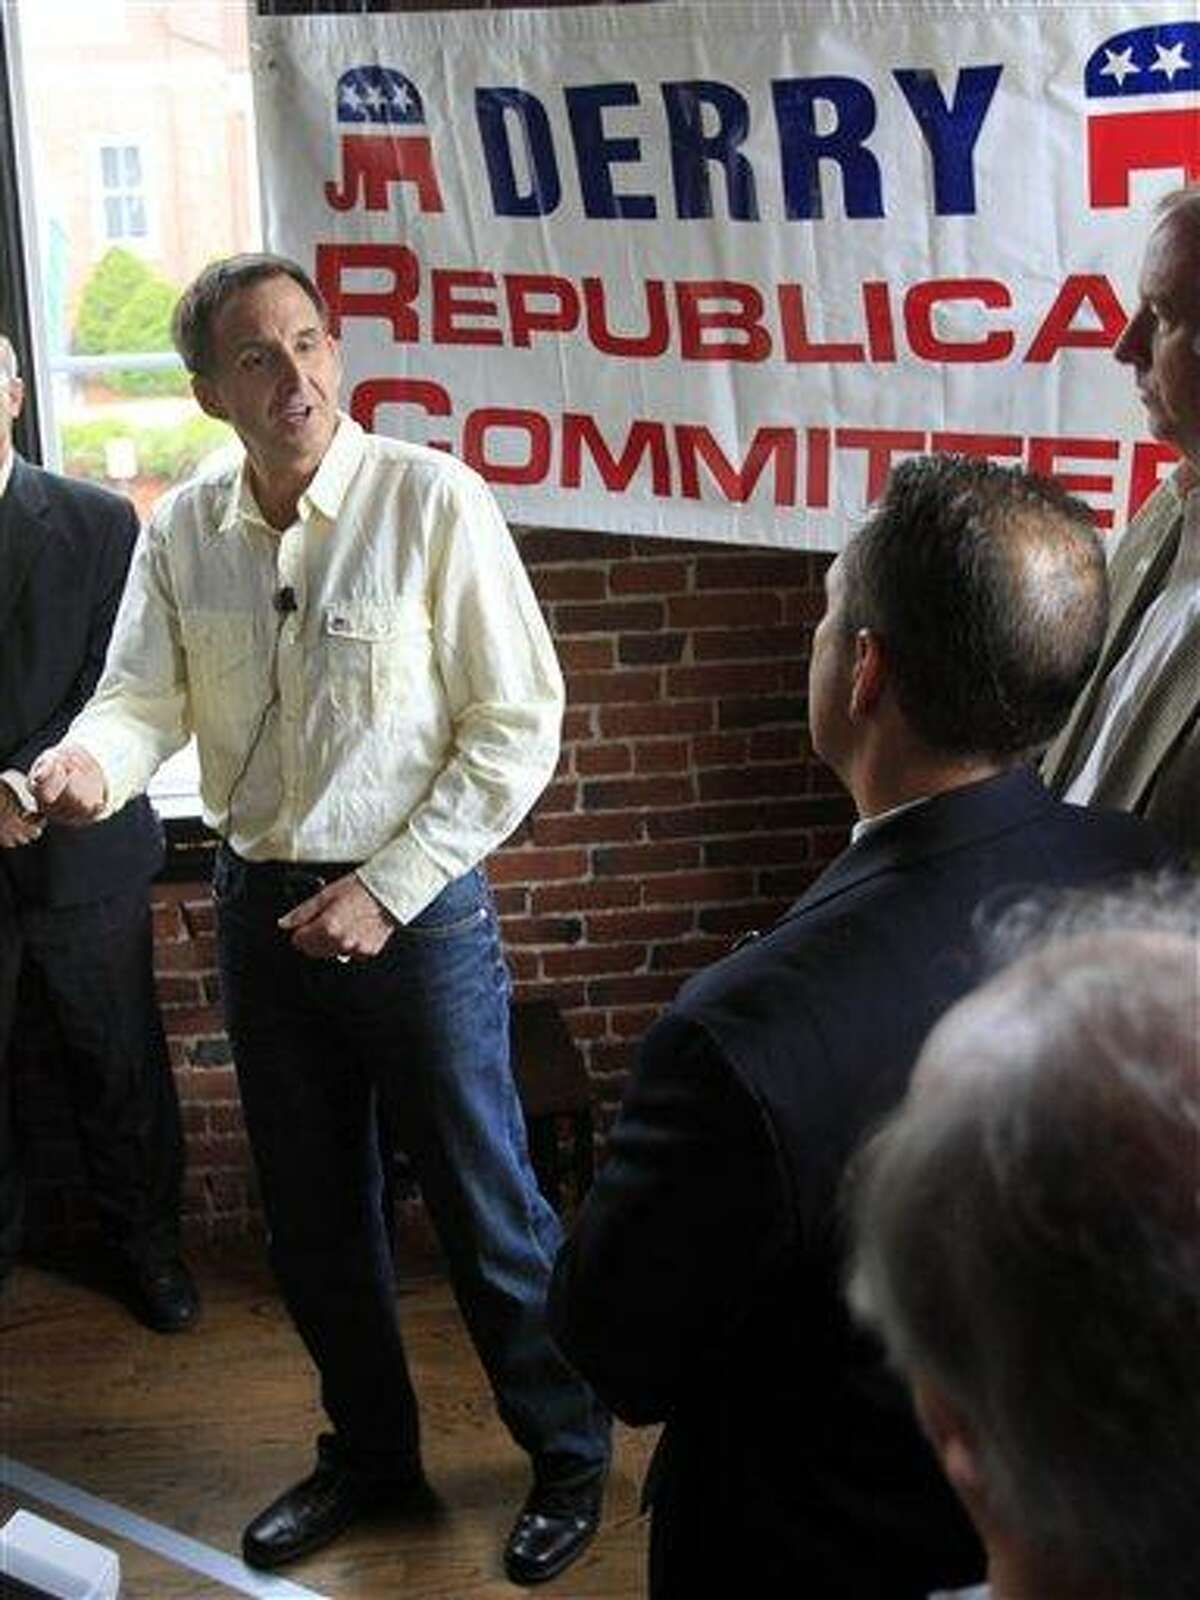 Republican 2012 presidential hopeful, former Minnesota Gov. Tim Pawlenty speaks at Halligan Tavern during a meet and greet sponsored by the Derry Republican Committee, Sunday, June 12, 2011 in Derry, N.H. (AP Photo/Jim Cole)